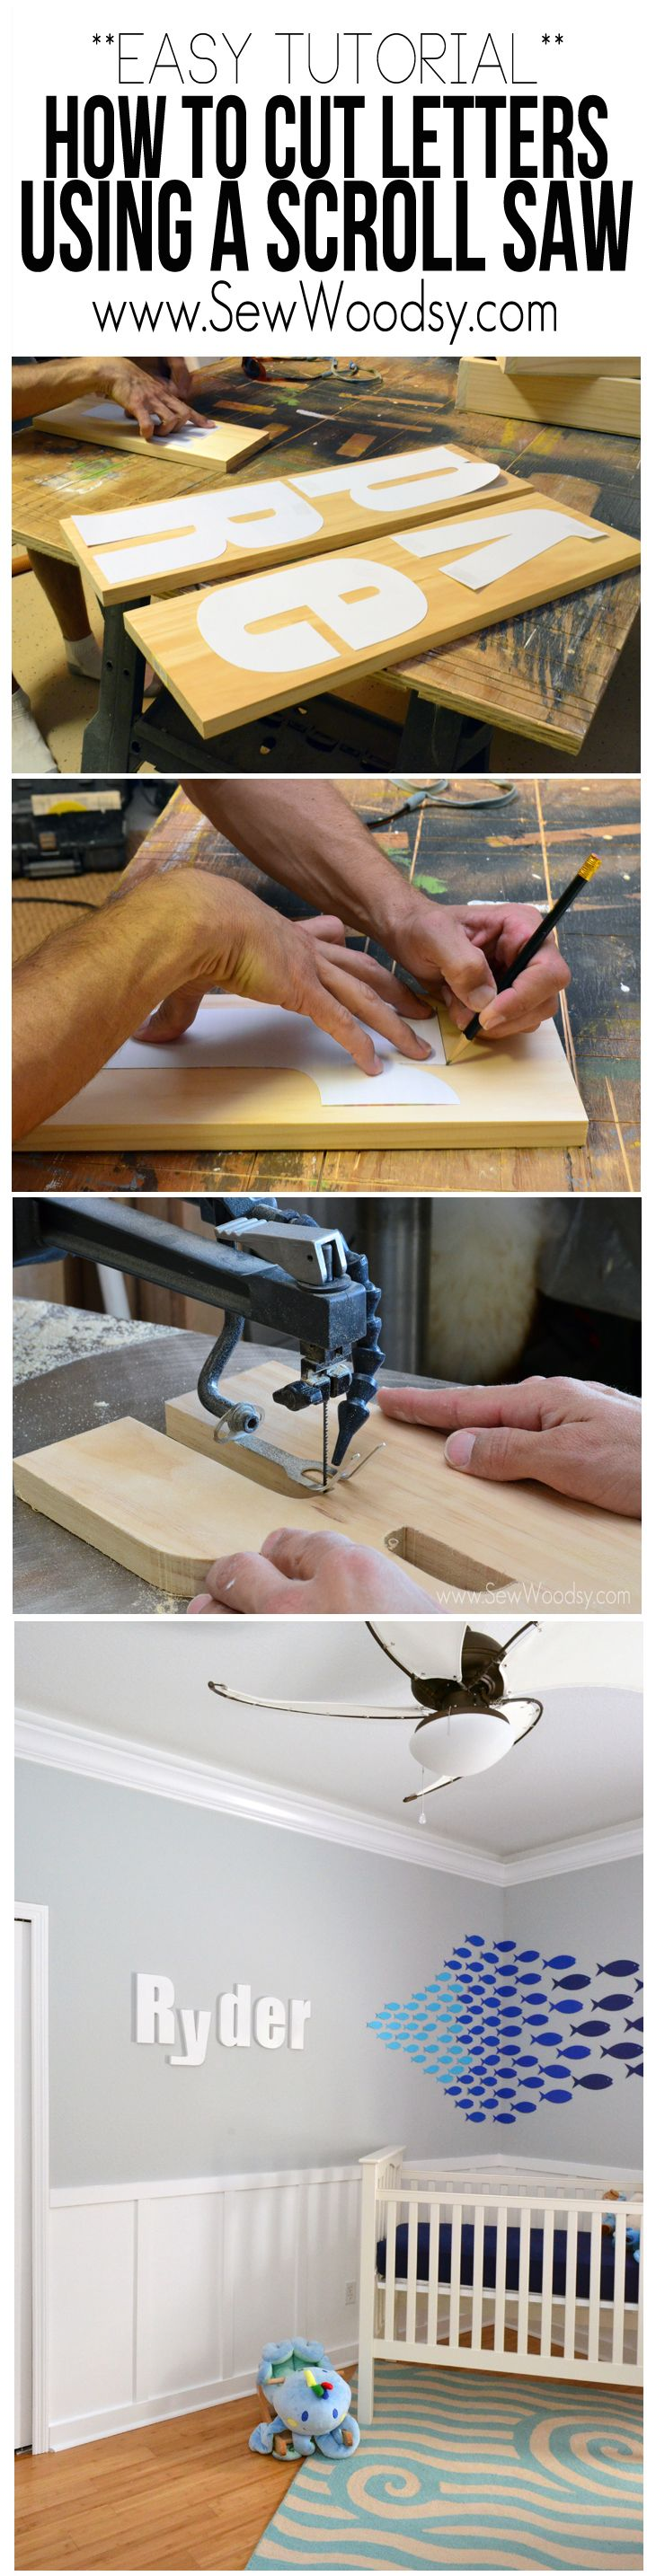 Easy Tutorial On How To Cut Letters Using A Scroll Saw